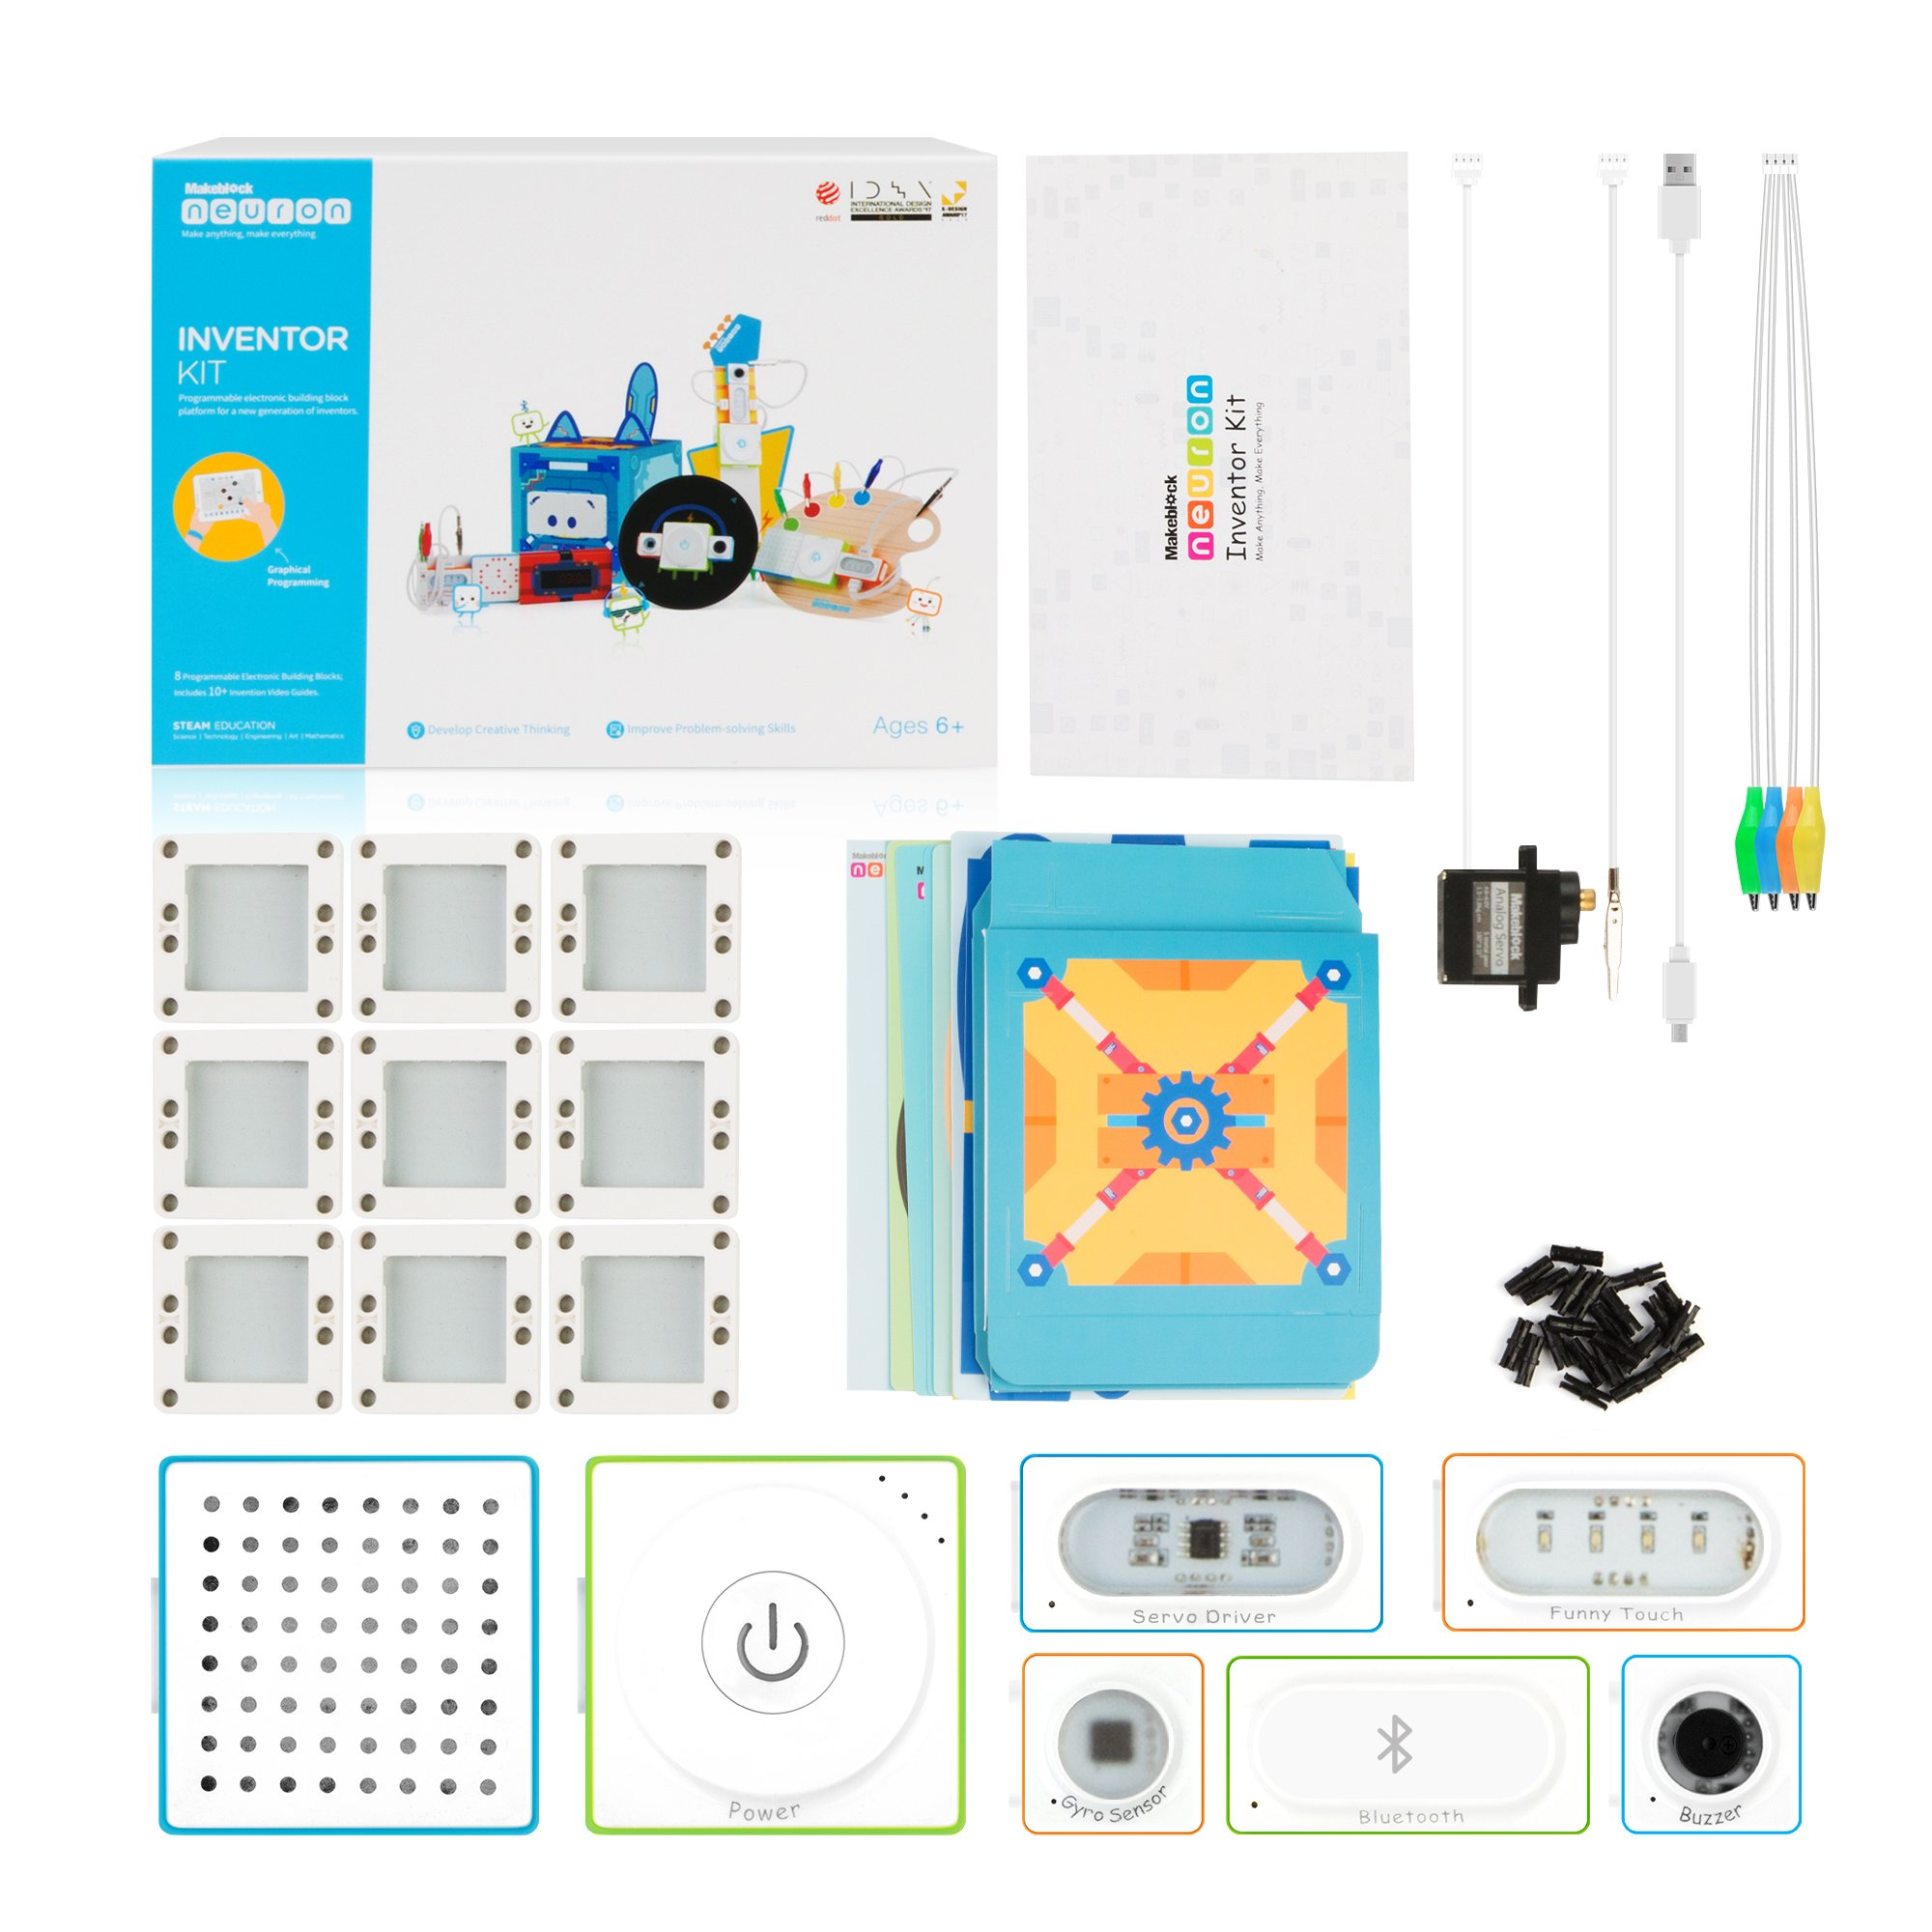 Makeblock Neuron Inventor Kit, STEAM Education, Graphical Programming, Magnetic Pogo Pins for 6 Year & up Kids+ with 6 Basic Blocks, Over 10 Kinds of Funny Robots, Like Rabbit,Dashing Raptor by Makeblock (Image #8)